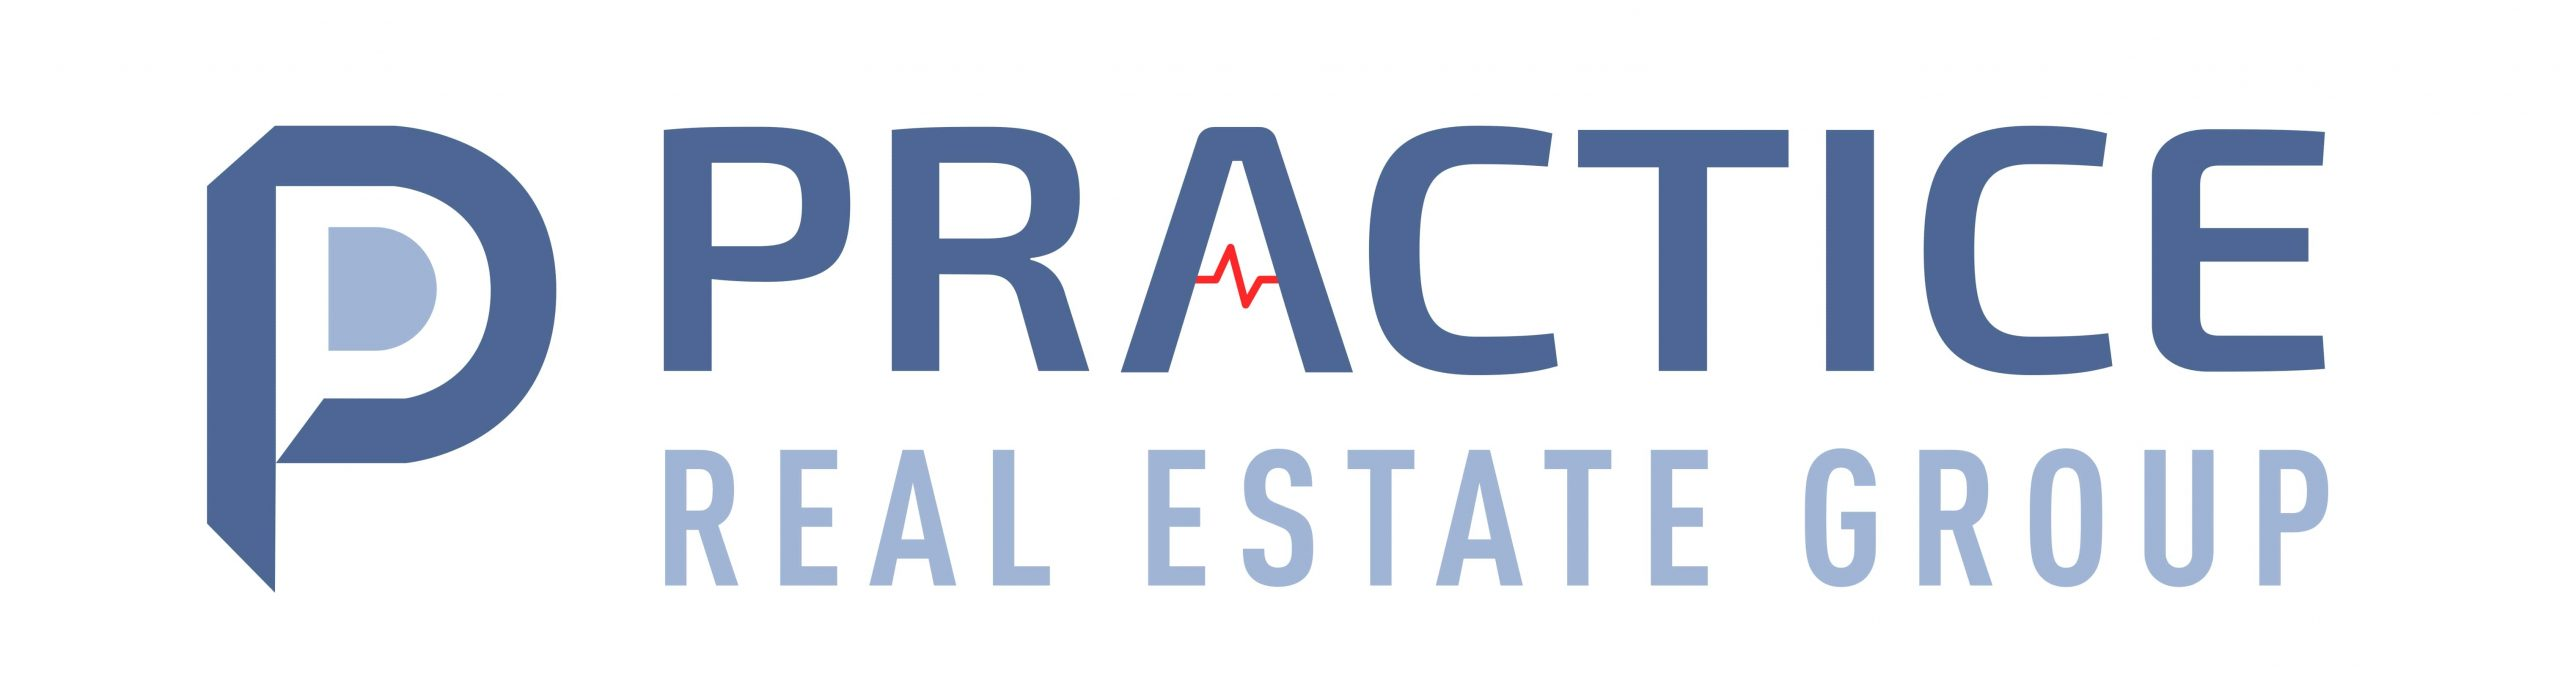 Practice real estate group logo